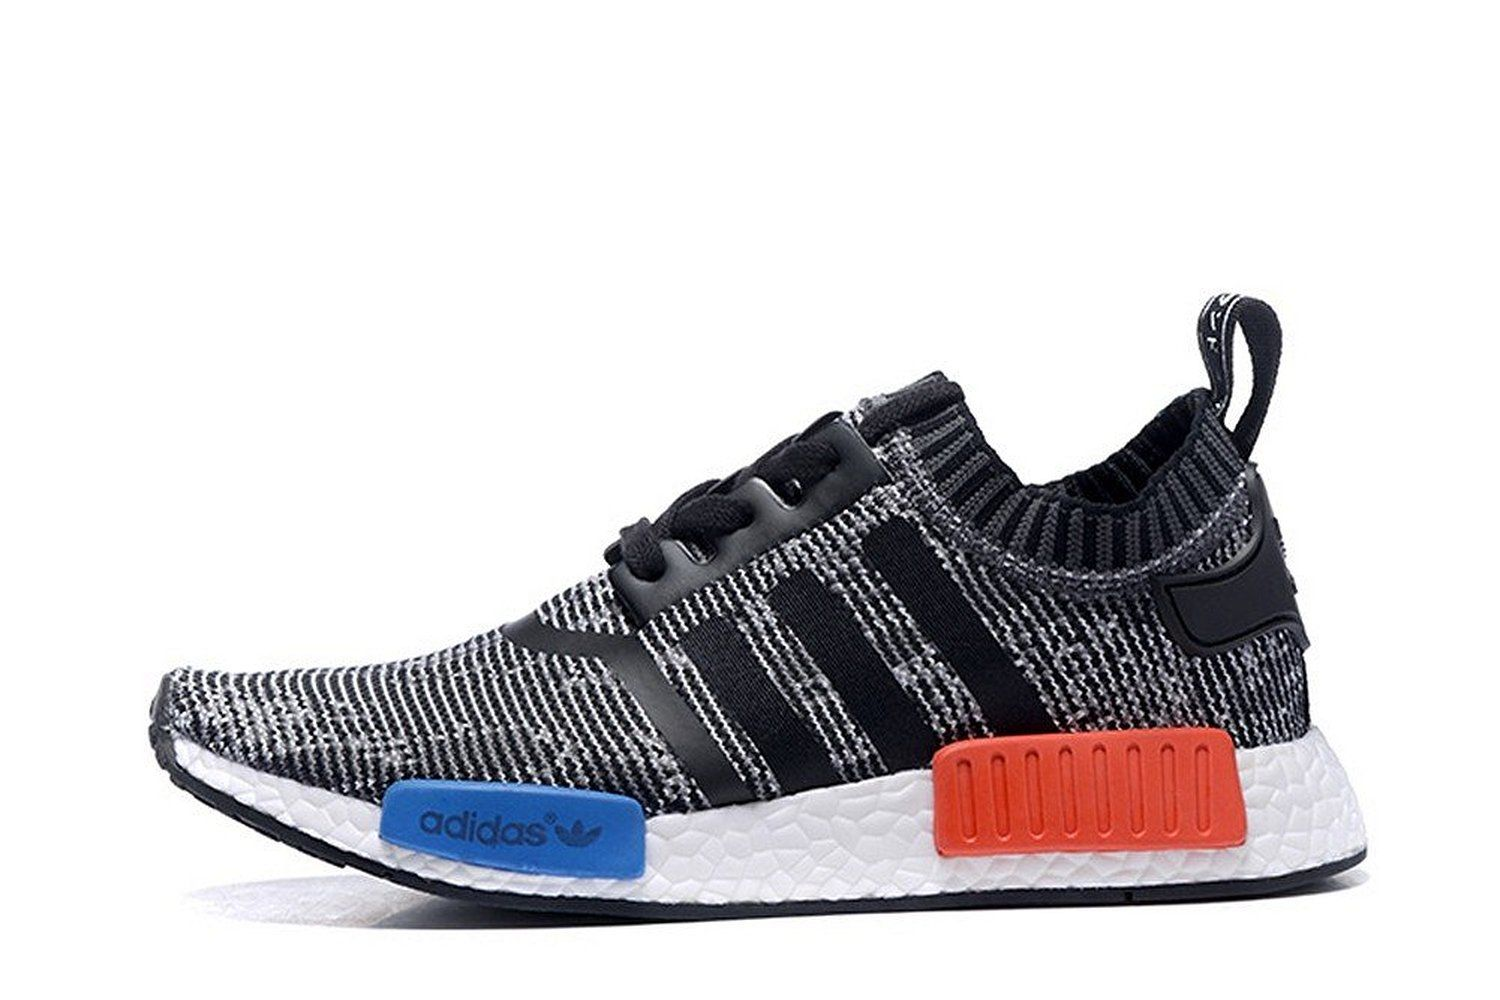 Amazon.com: Adidas Originals- NMD Primeknit Shoes mens: Sports \u0026 Outdoors